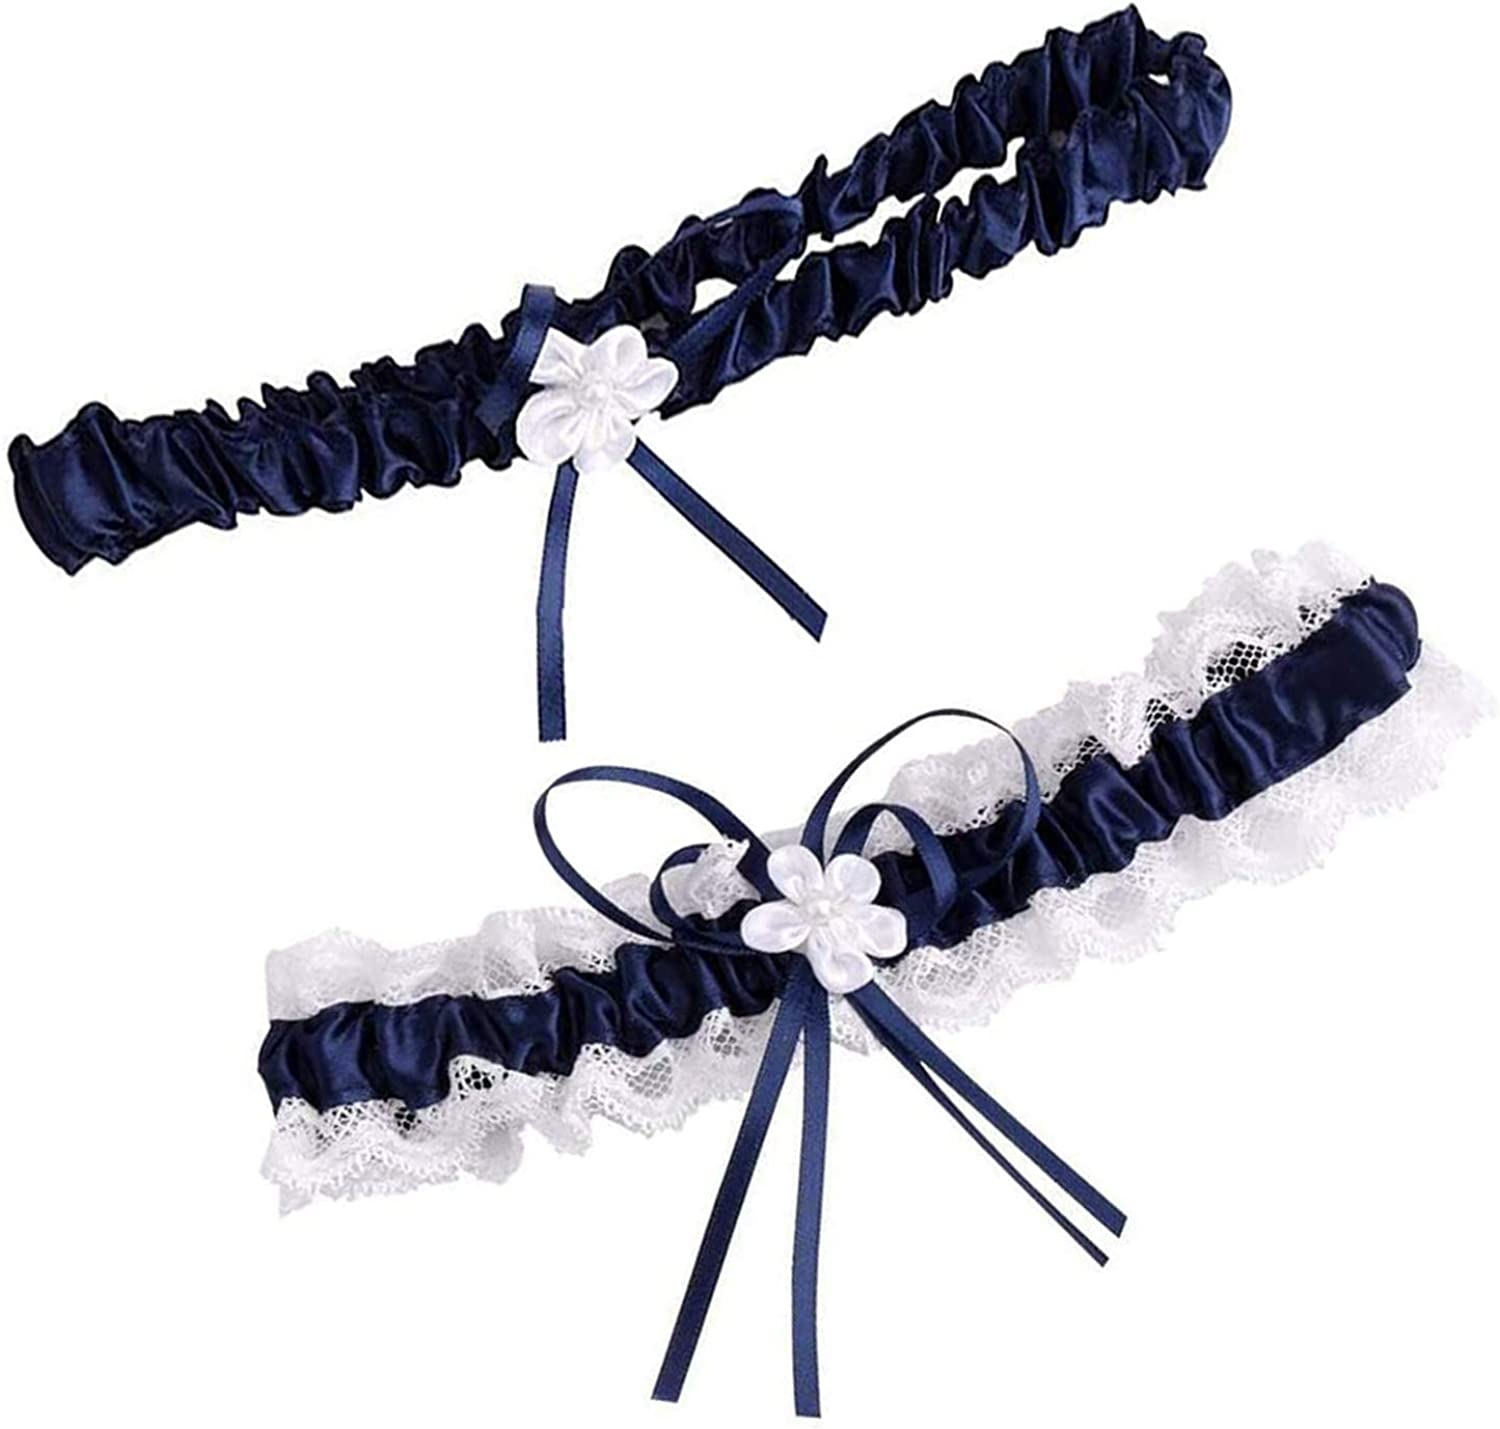 Garters for Bride, Lace Wedding Bridal Garters with Toss Away - Set of 2 with Satin Bow. One for Keeps and one for Garter Throw - Women Wedding Bridal Legs Garter Set